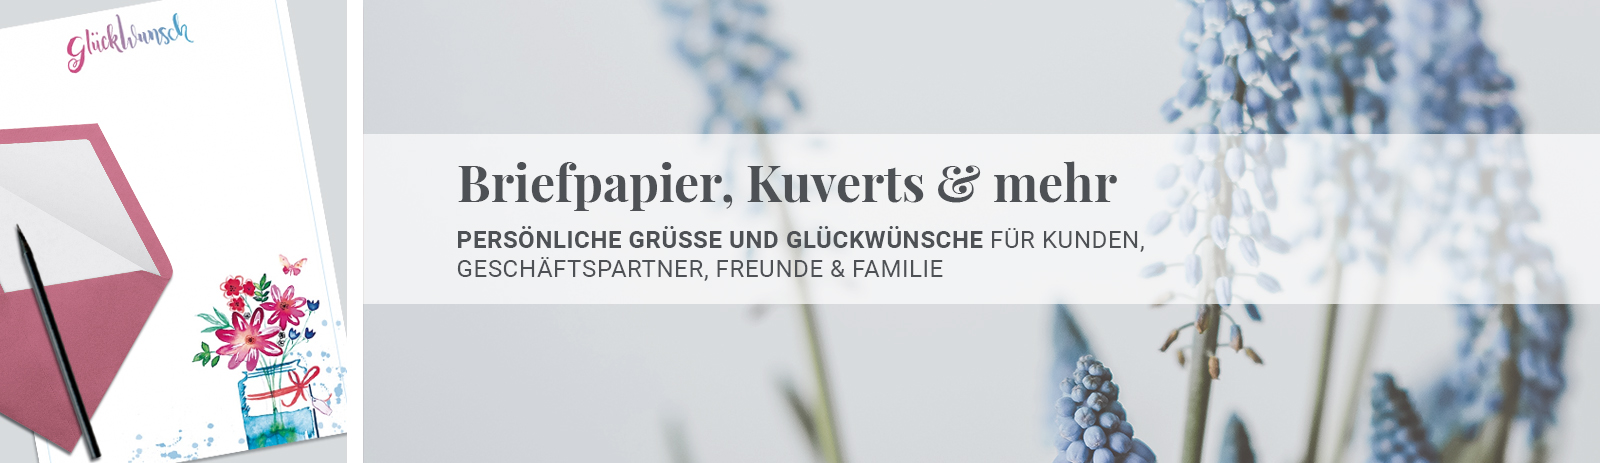 Briefpapier, Kuverts & mehr